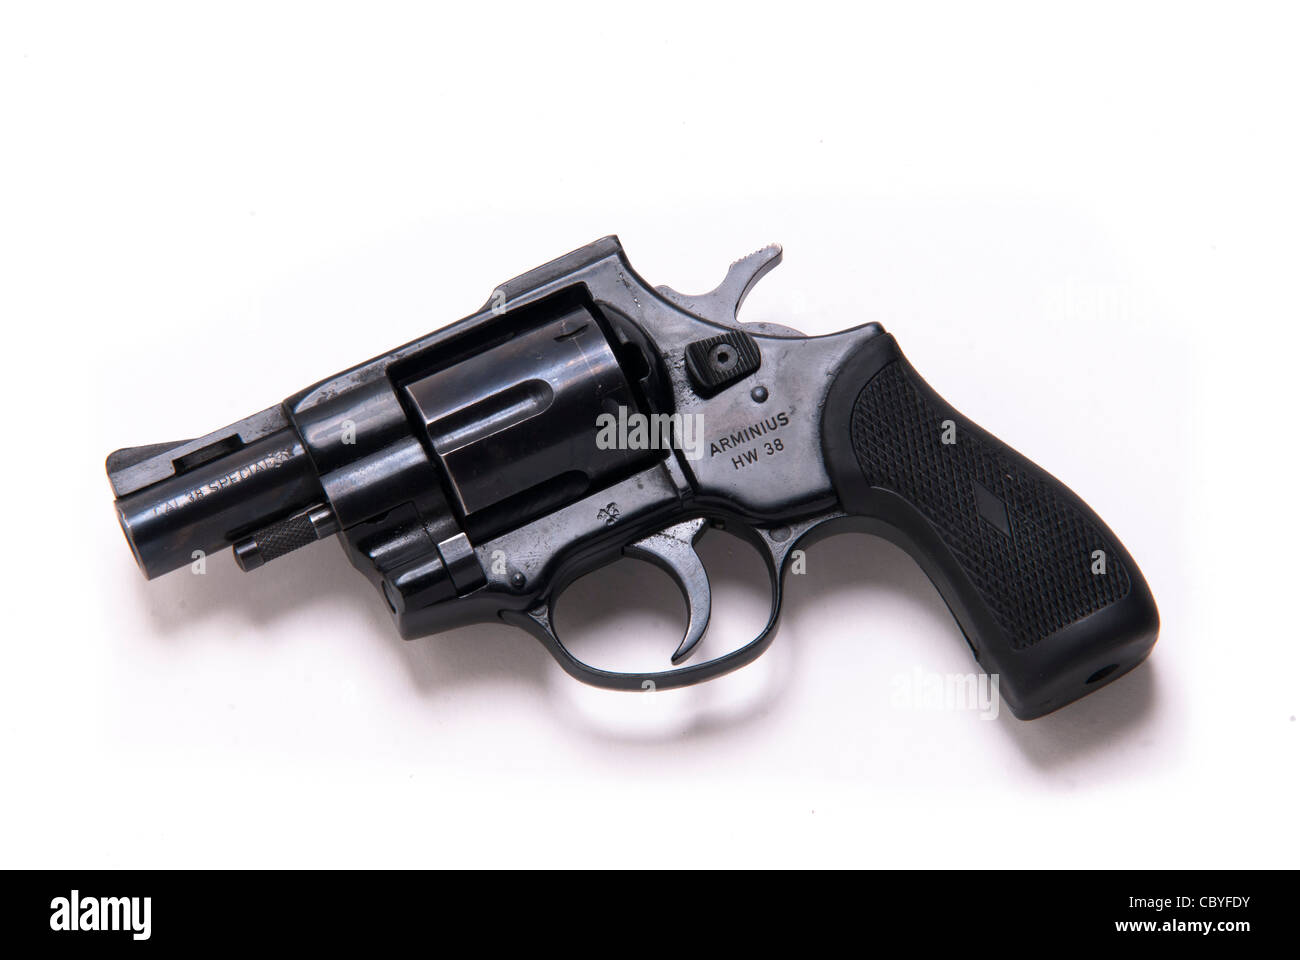 close up of revolver on white background - Stock Image